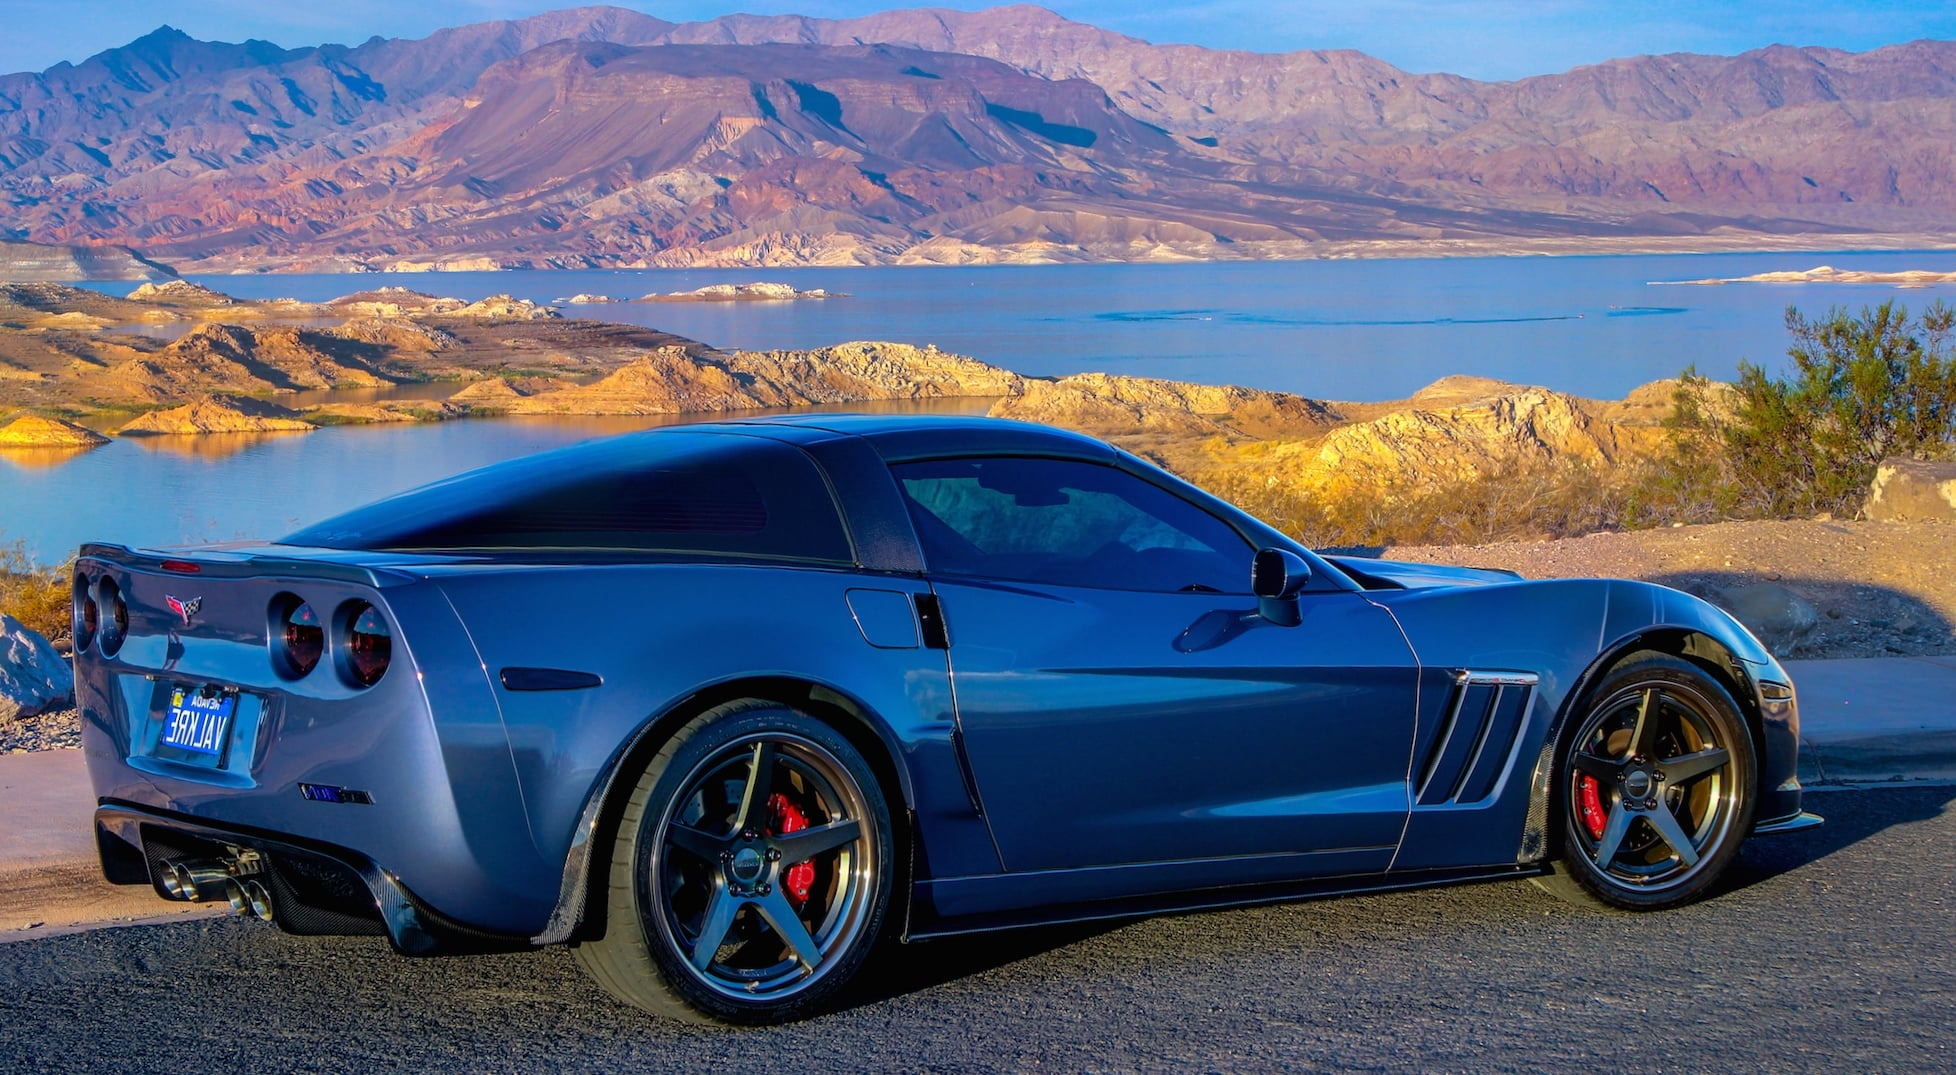 34 Chevrolet Corvette C6 Z06 Wallpapers Hd